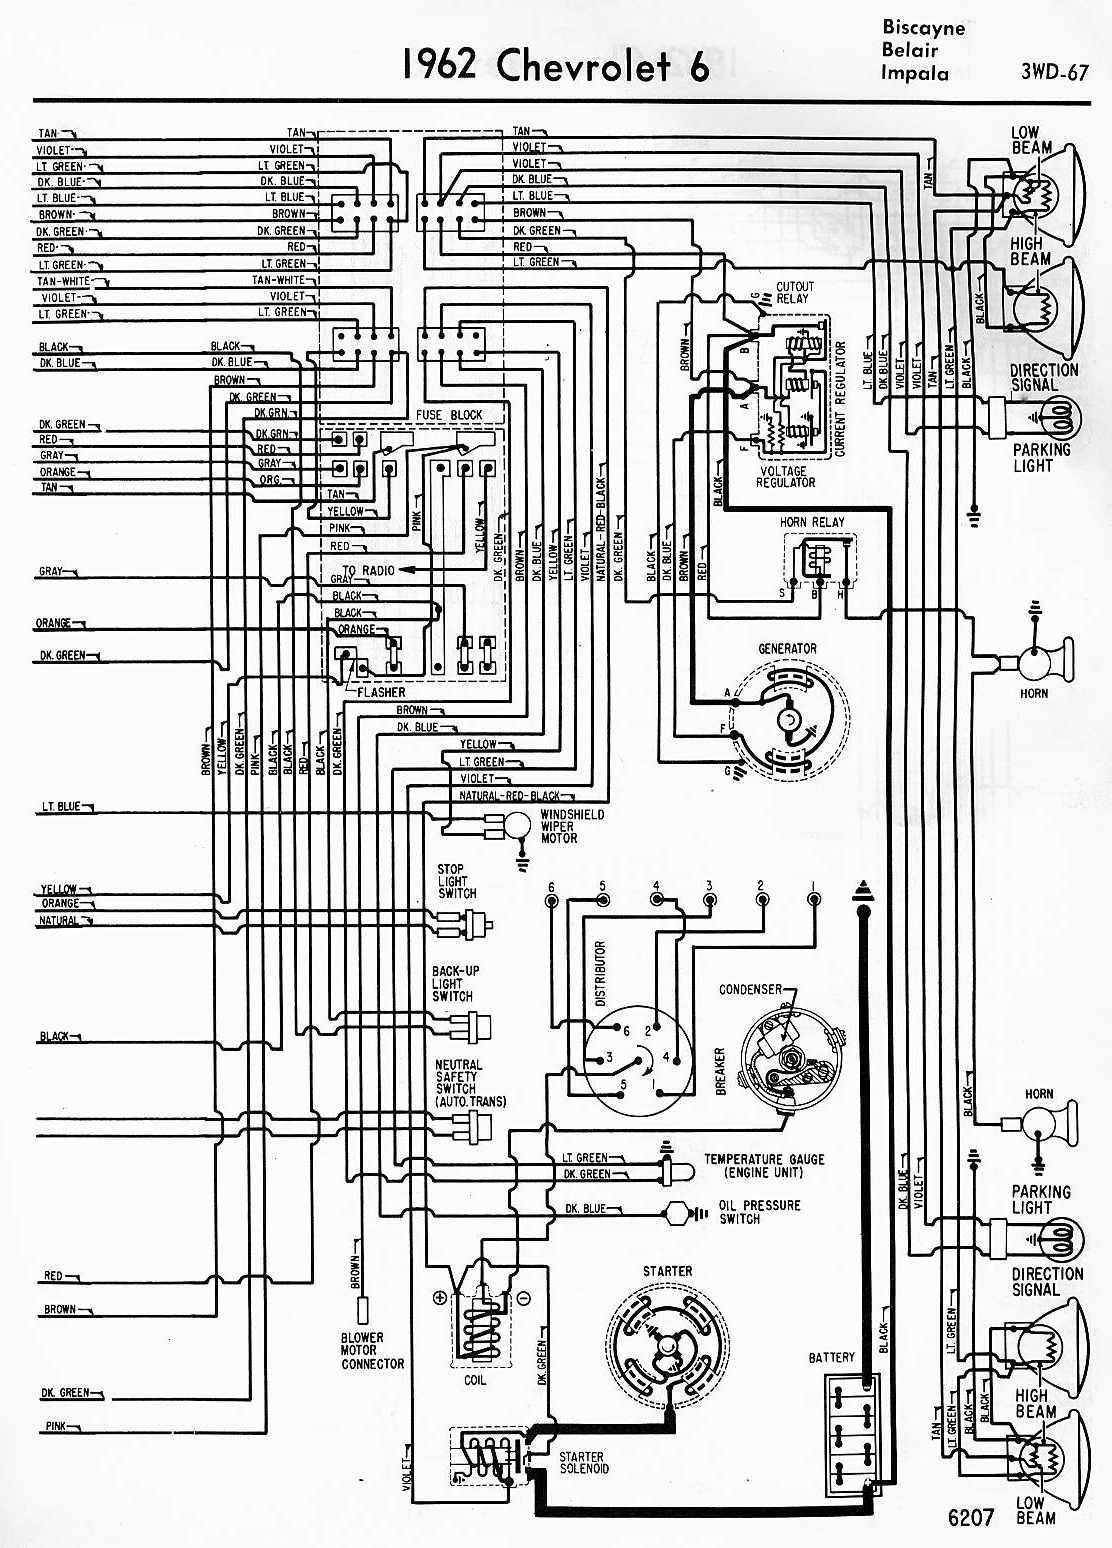 Headlight Galaxie Ford Wiring Diagram 1966 Wire Center Transit Diagrams 1962 Chevy Truck For Light Rh Prestonfarmmotors Co 1956 F100 Electrical